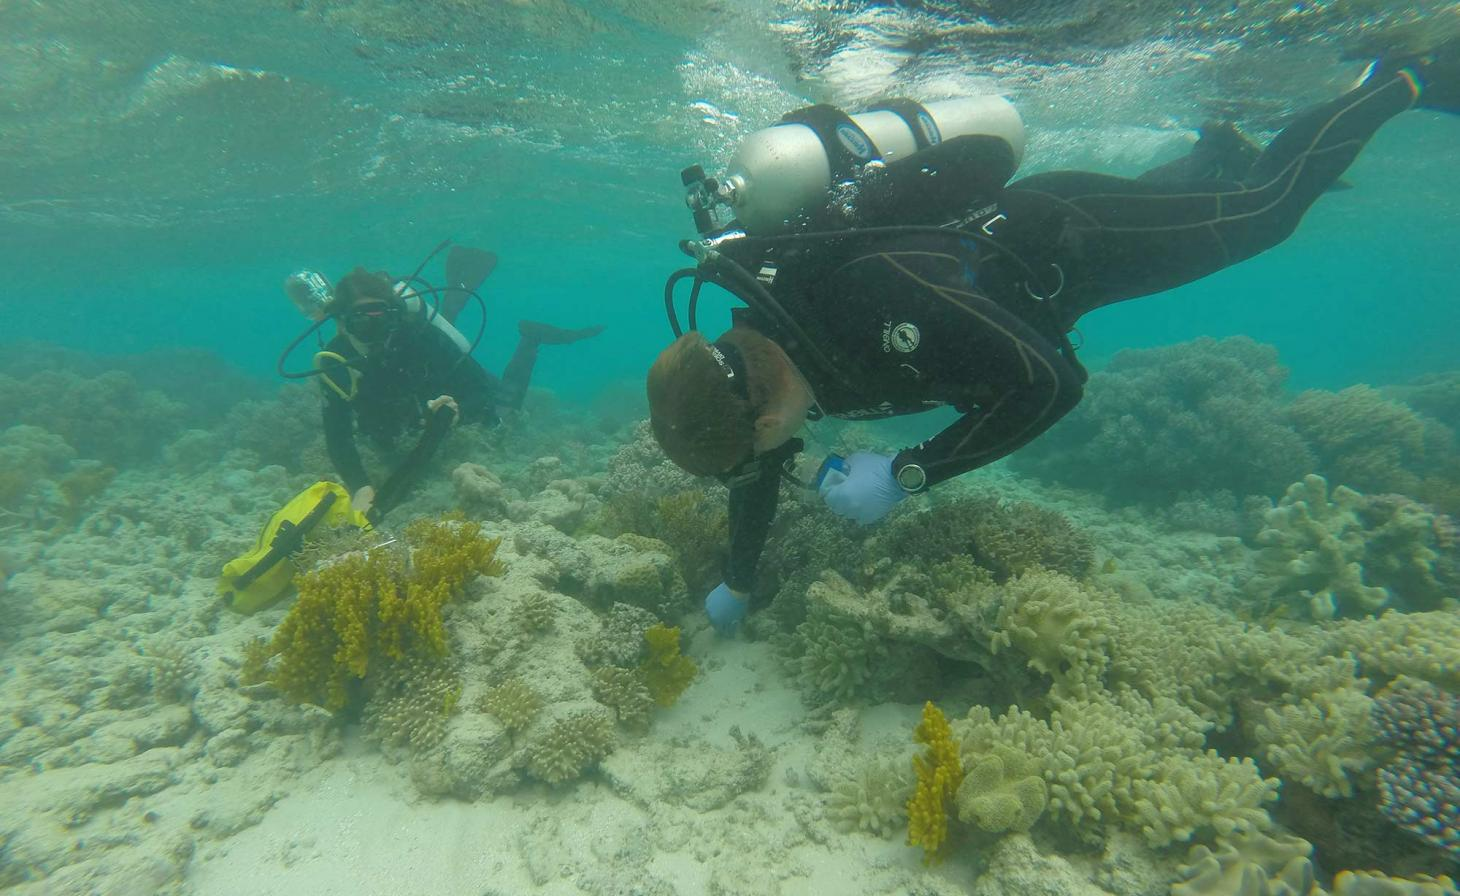 Scuba diver researching coral in shallow ocean